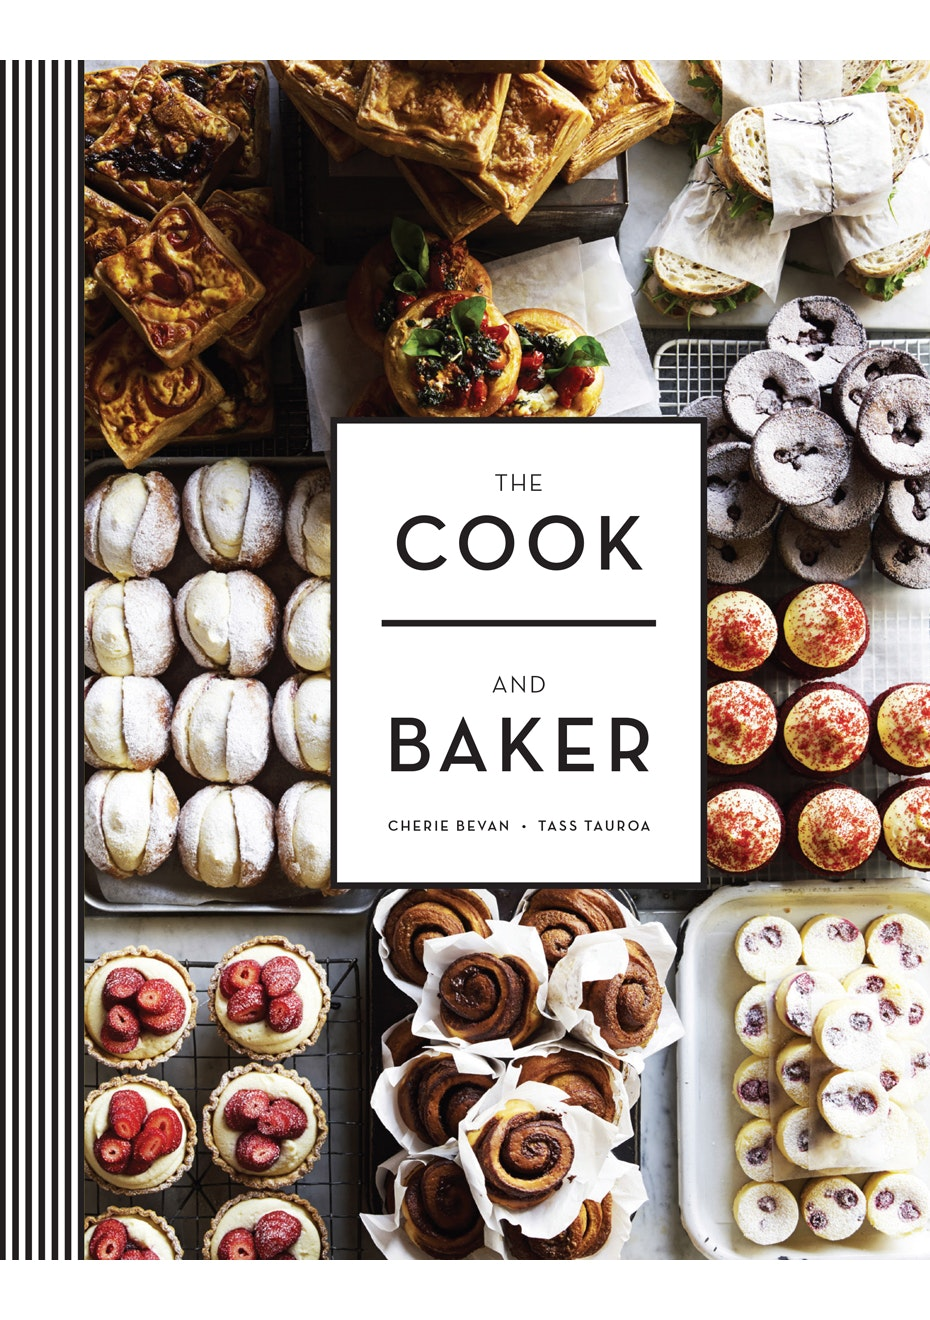 The Cook and Baker, by Cherie Bevan and Tass Tauroa